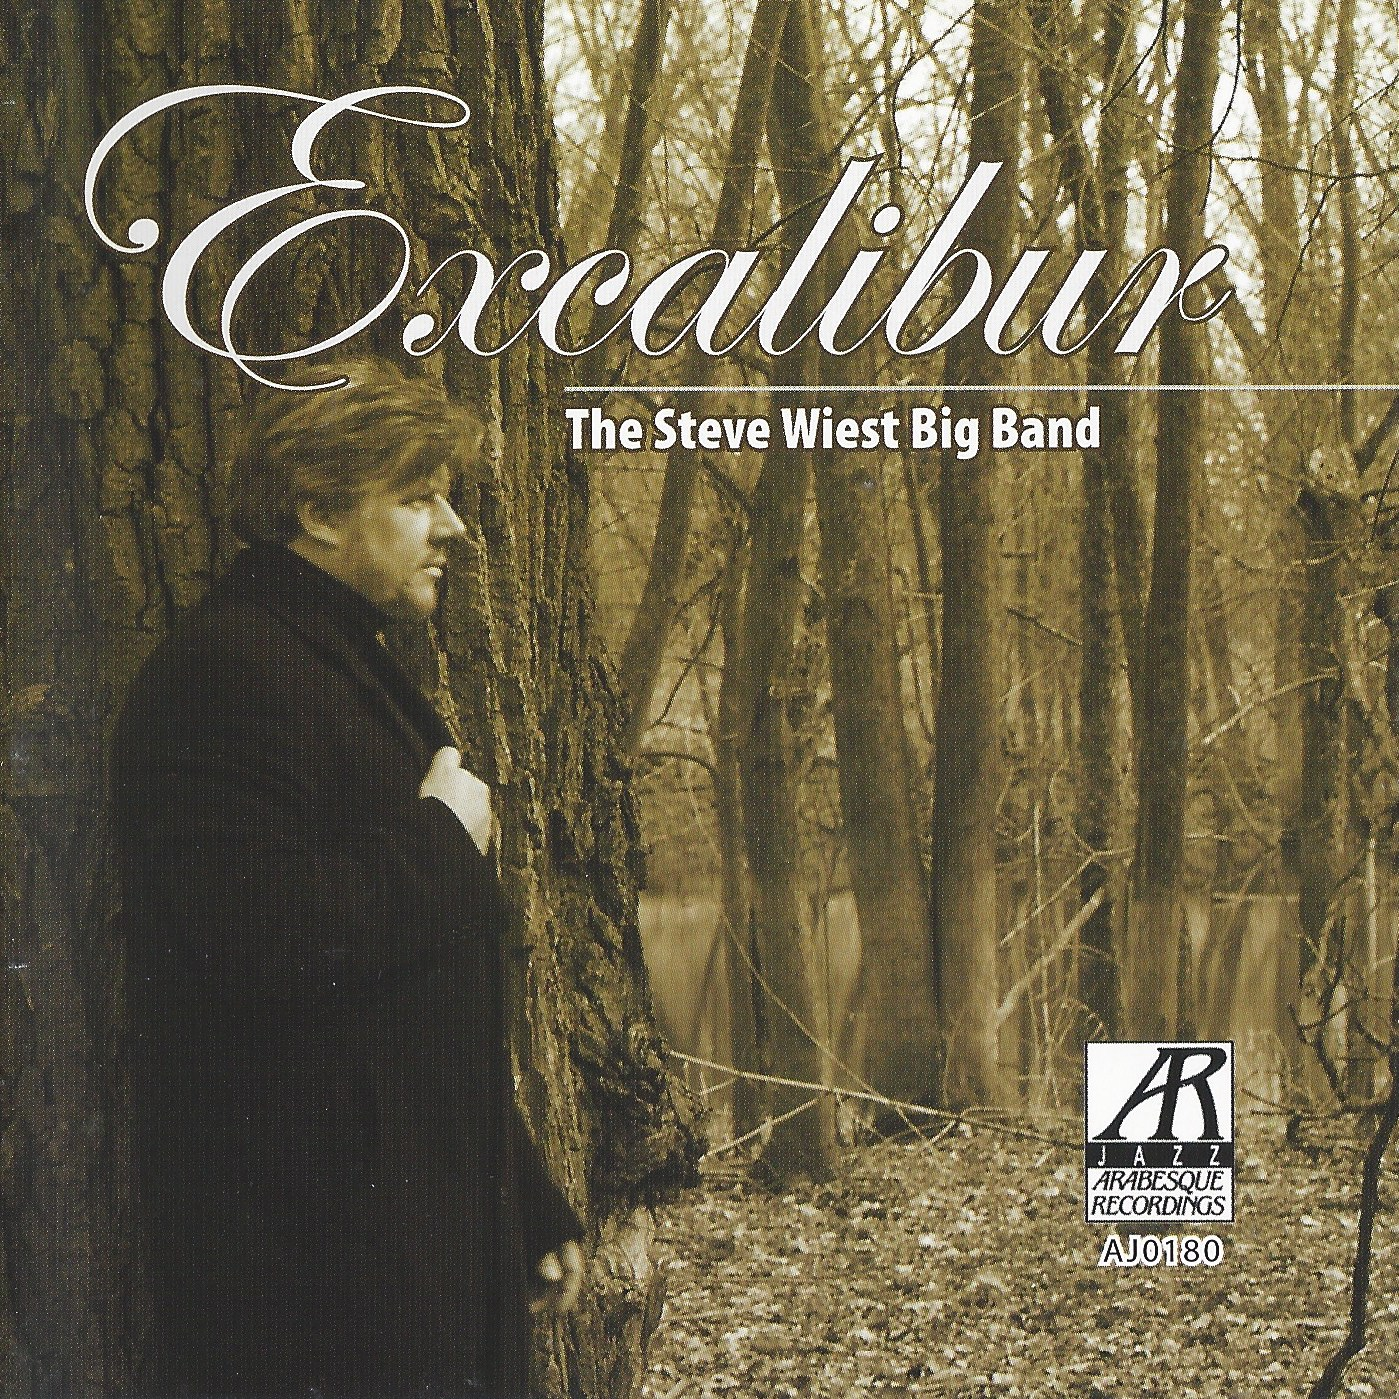 AJ0180  | Excalibur |  The Steve Wiest Big Band